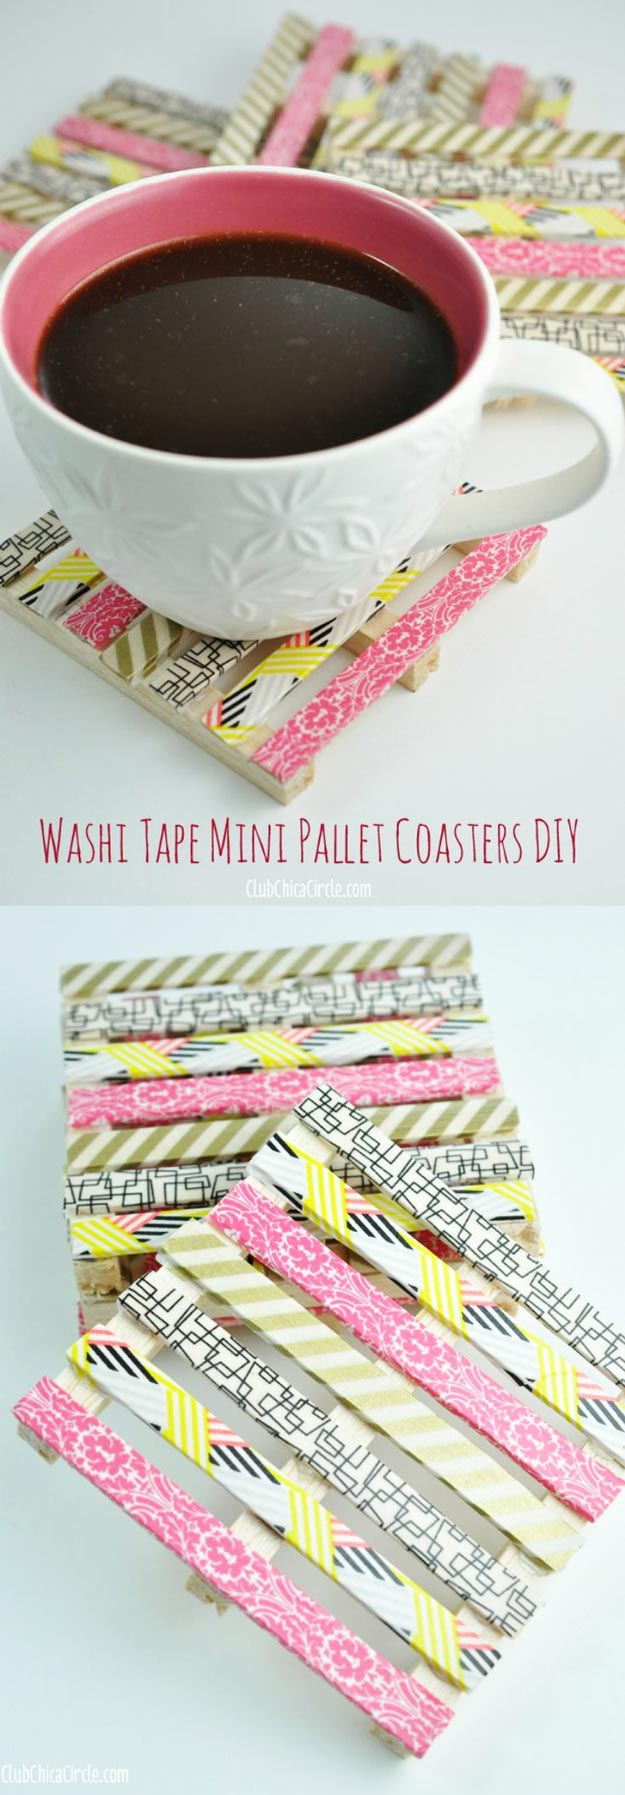 47 fun pinterest crafts that aren 39 t impossible diy